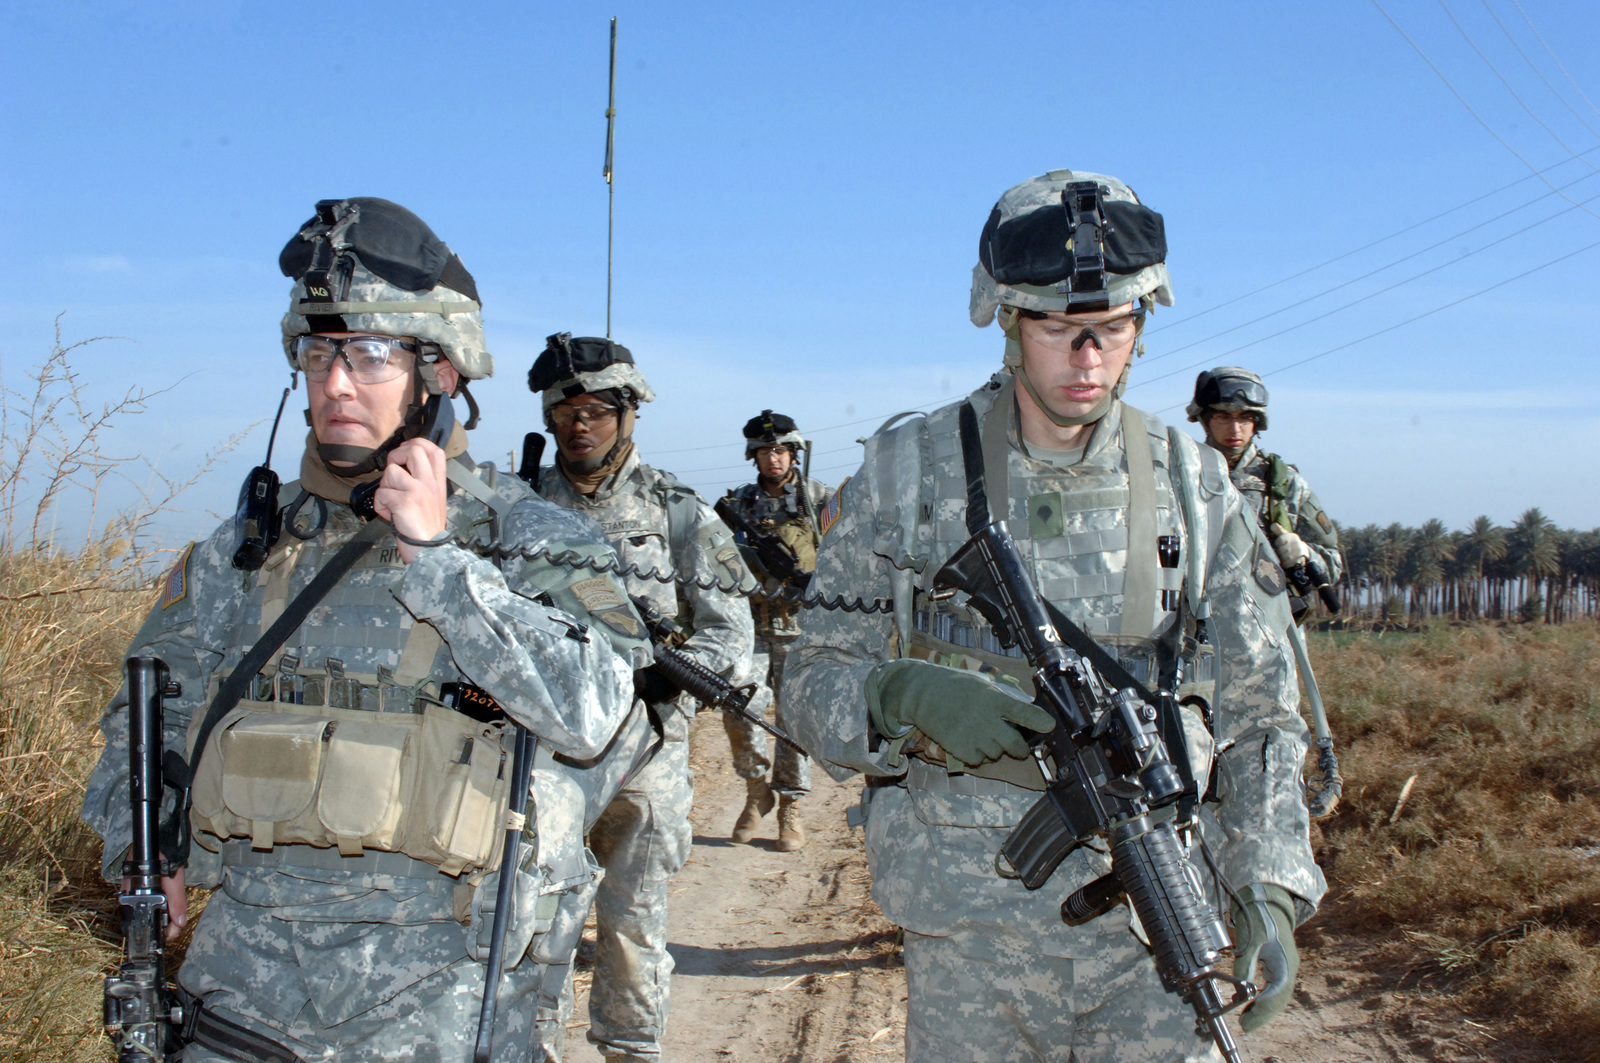 On Dec. 30, 2005 soldiers from Bravo Company, 2nd Bn, 502nd INF conducted Search and Sweep Operations in the Village of Shakaria, Iraq. (Left) CAPT. Andre Rivier, B Co Commander maintained communication with all elements during the operation.(U.S. Army photo by STAFF SGT. Kevin L. Moses Sr) (Released)